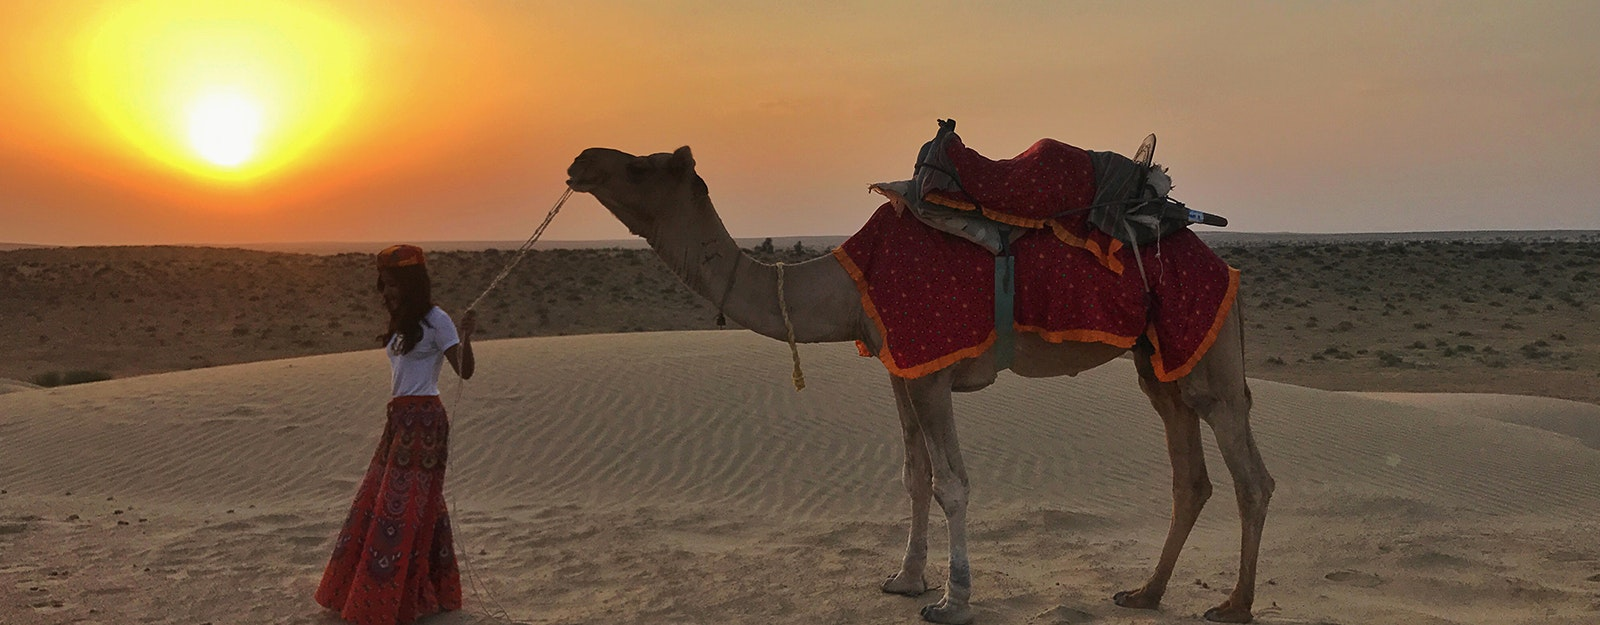 Camel rides and safaris dubai headout a trip to dubai is incomplete without a desert safari accompanied with a camel ride experience while the desert safari offers you the thrill of riding in altavistaventures Choice Image